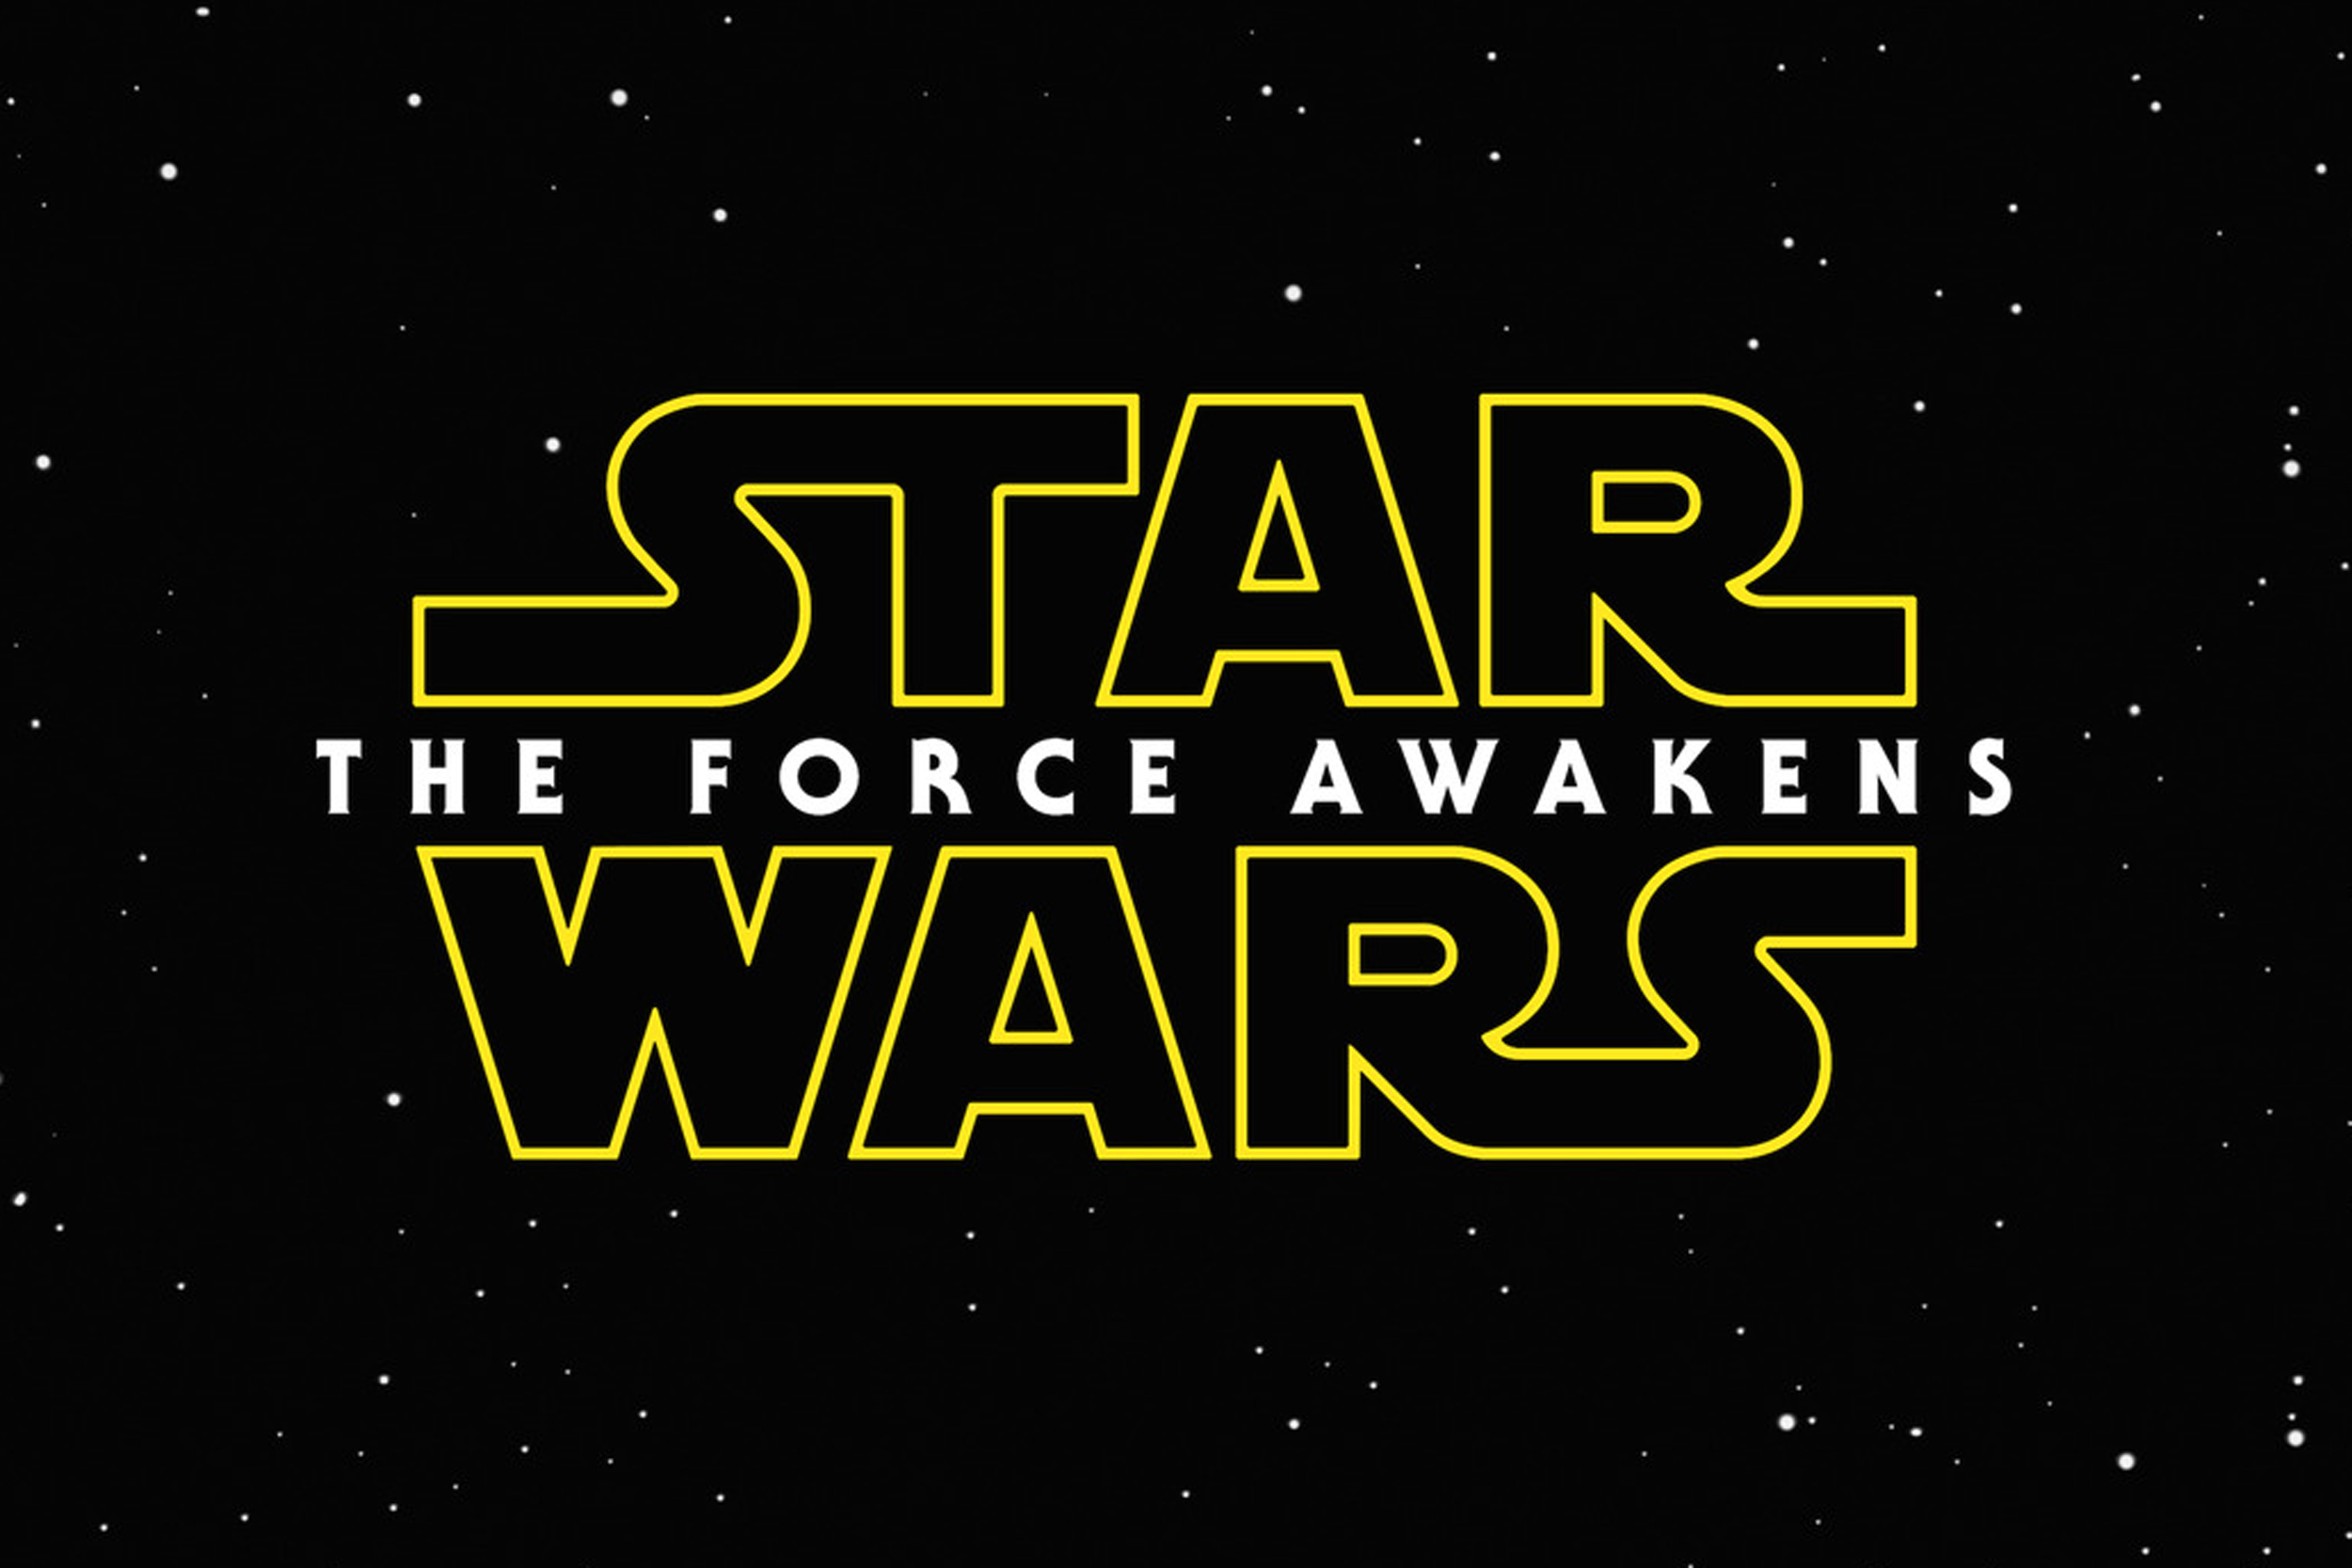 Star Wars Episode 7: The Force Awakens [Teaser]